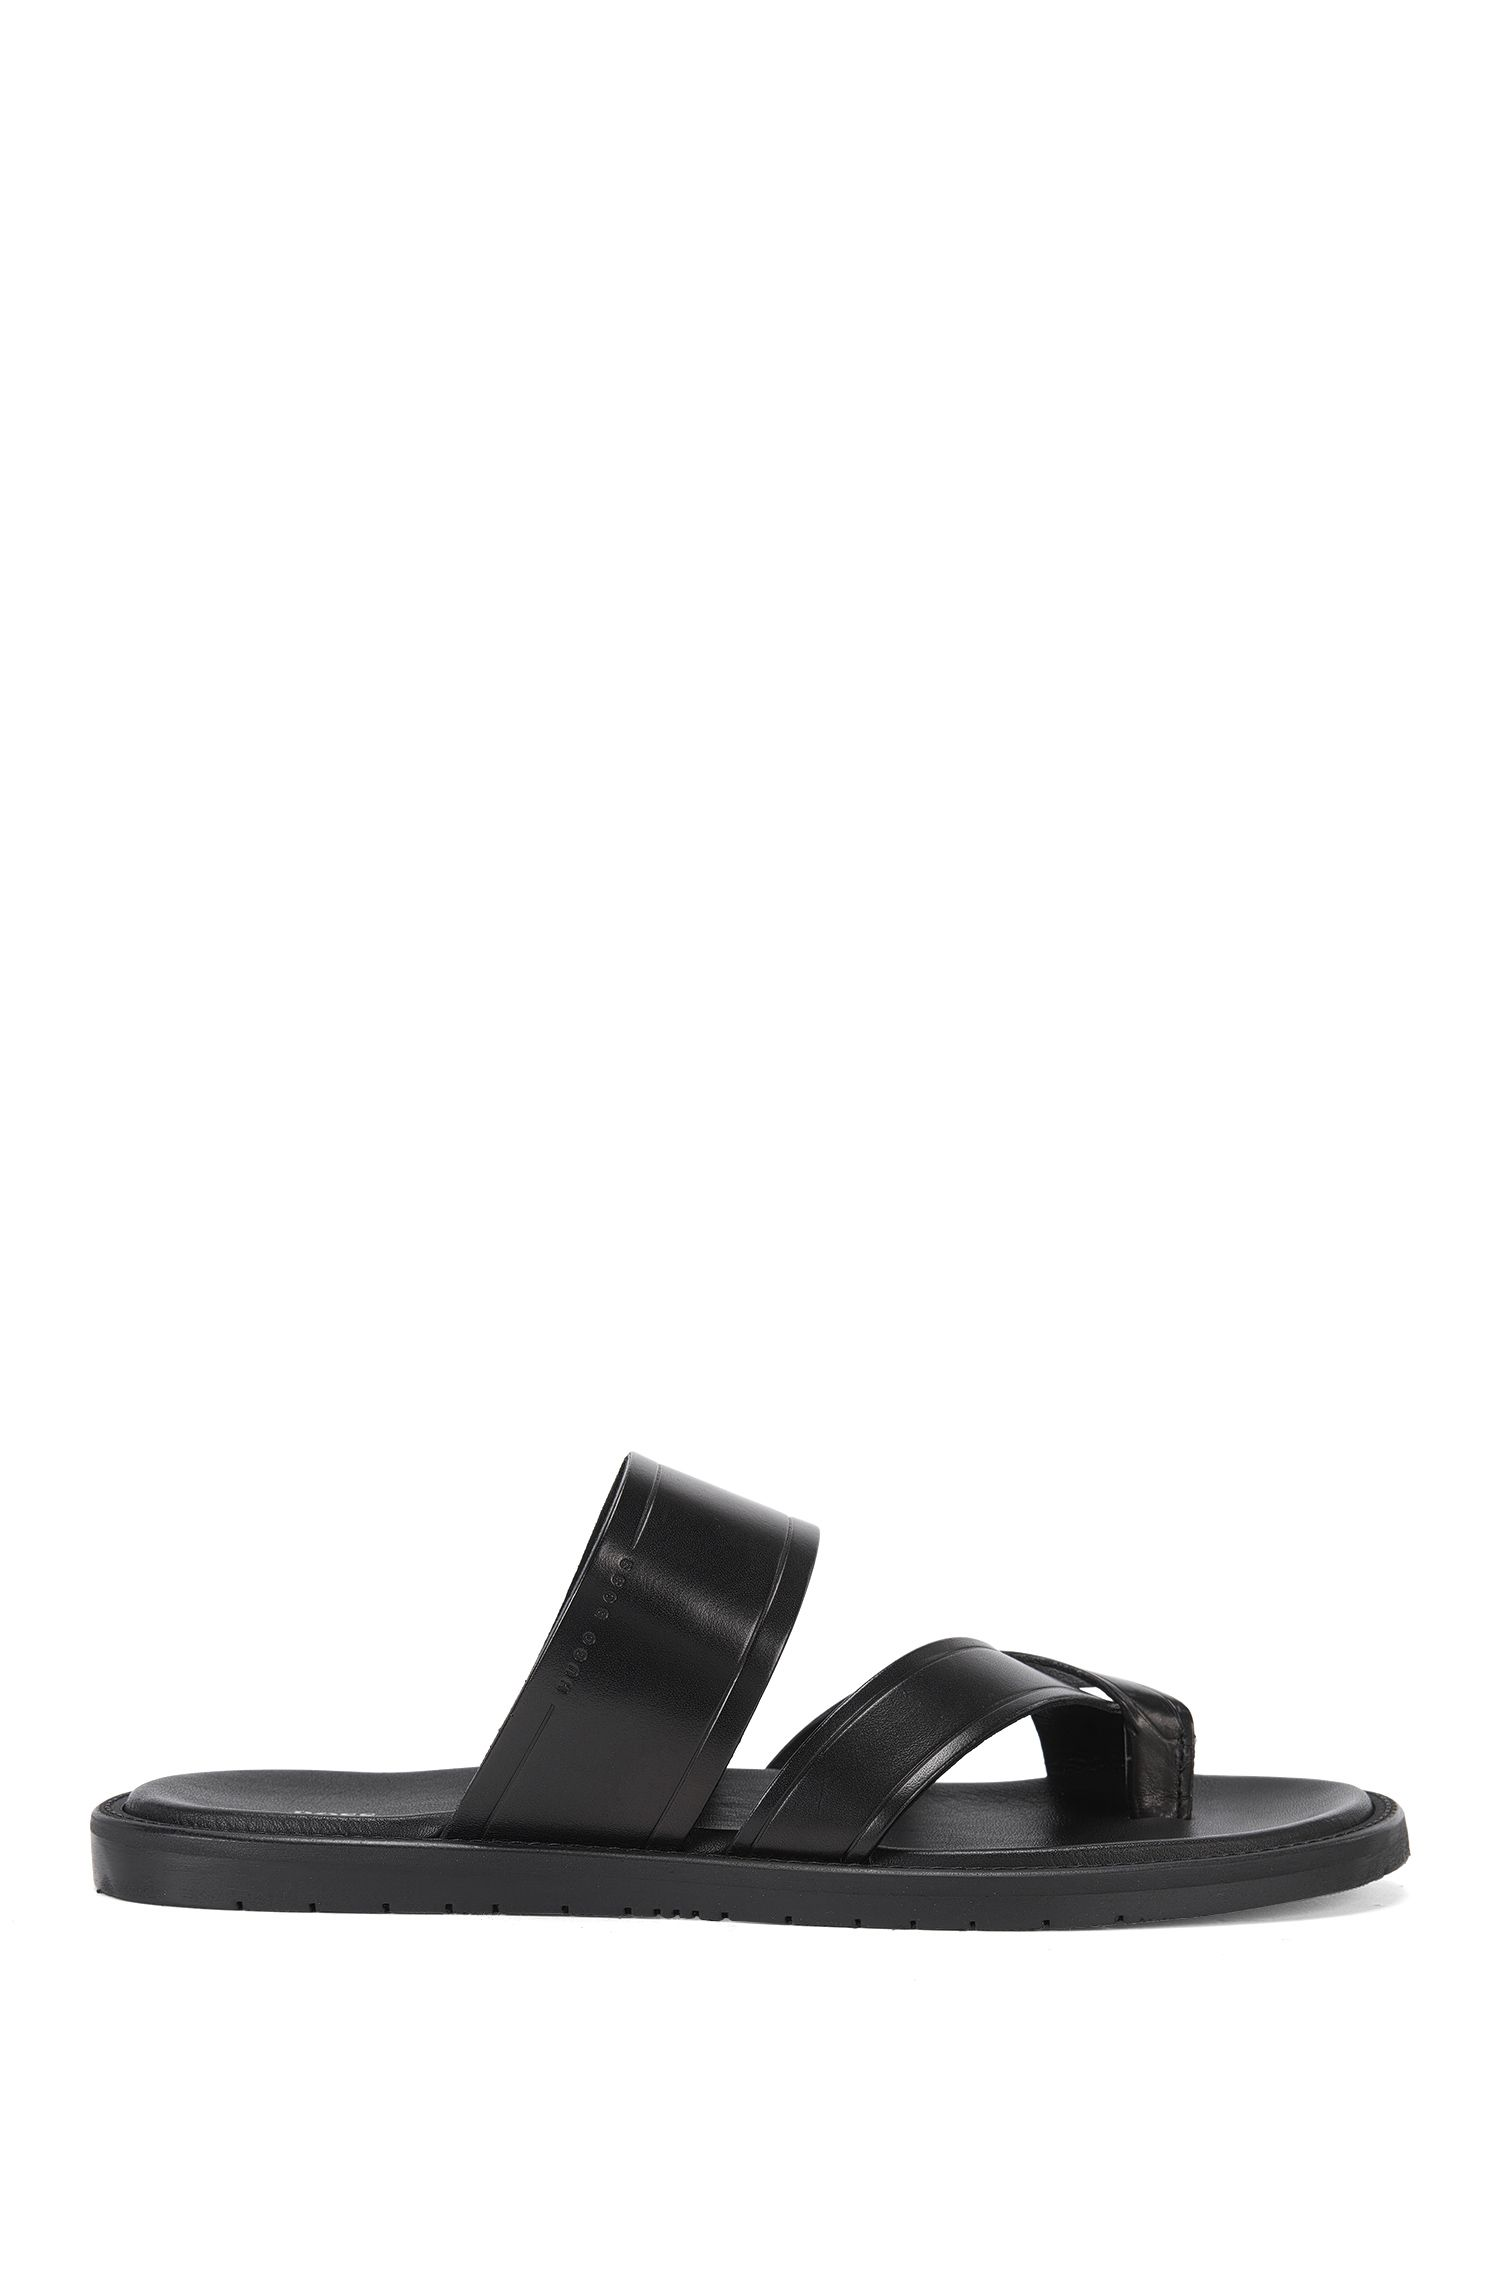 Plain toe-separator sandals in leather: 'Hamptons_Thon_ltsn'